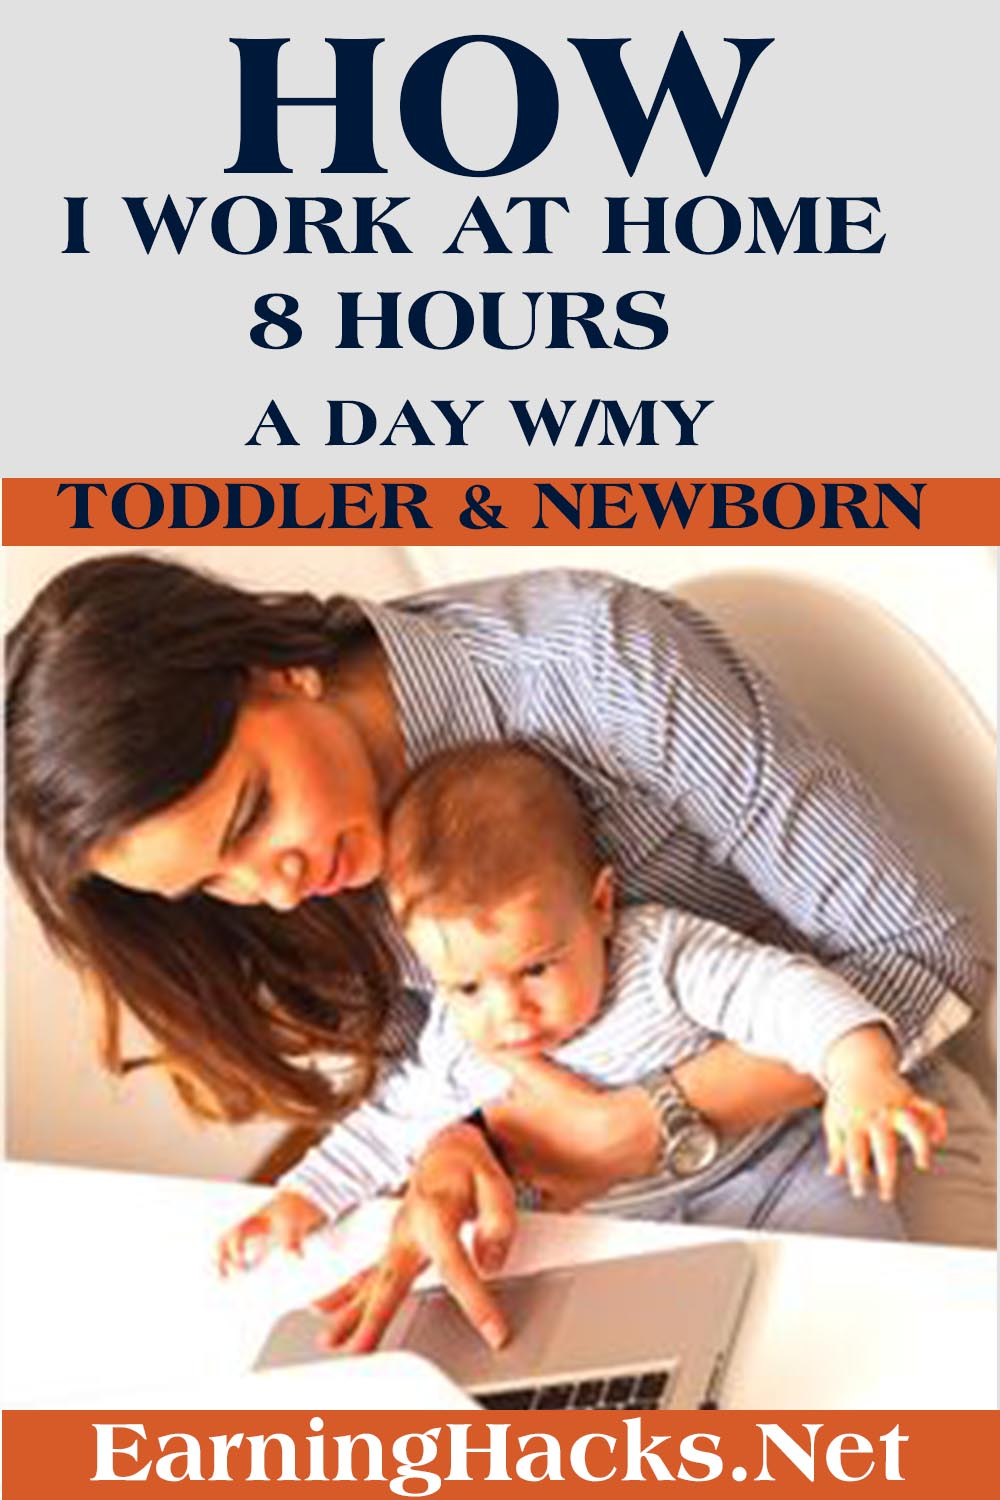 How I Work At Home 8 Hours A Day W/My Toddler & Newborn